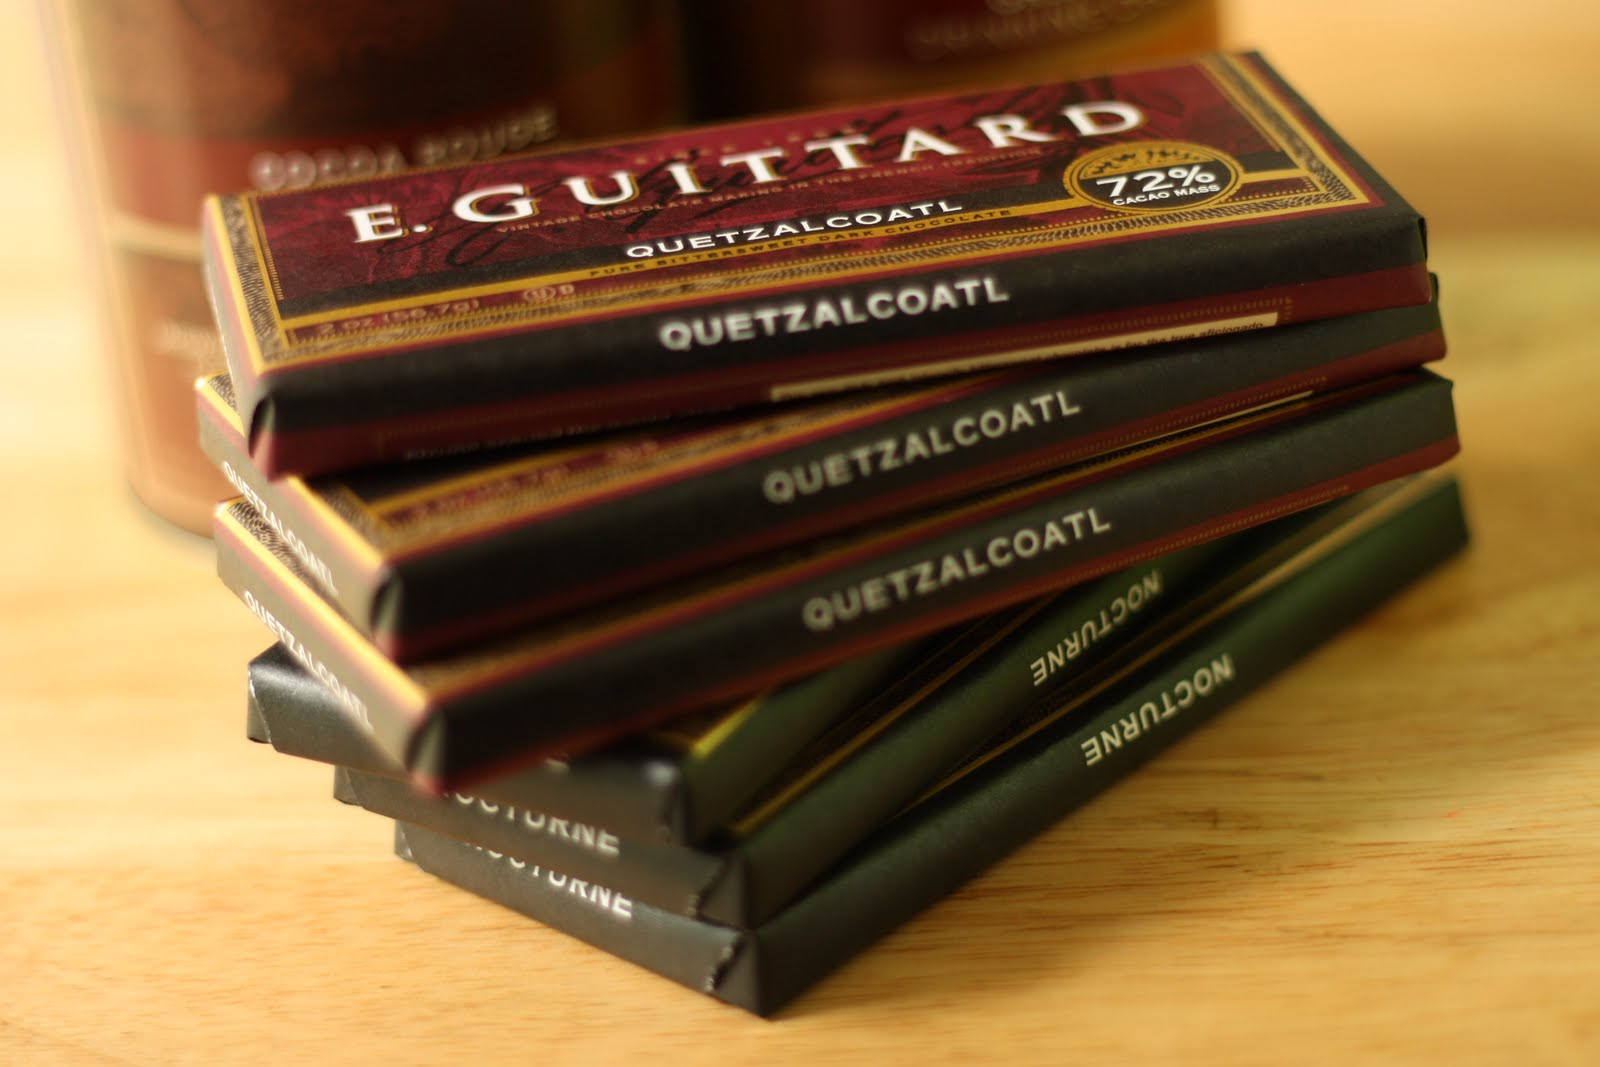 Mangio da Sola: Guittard Chocolate Review and a